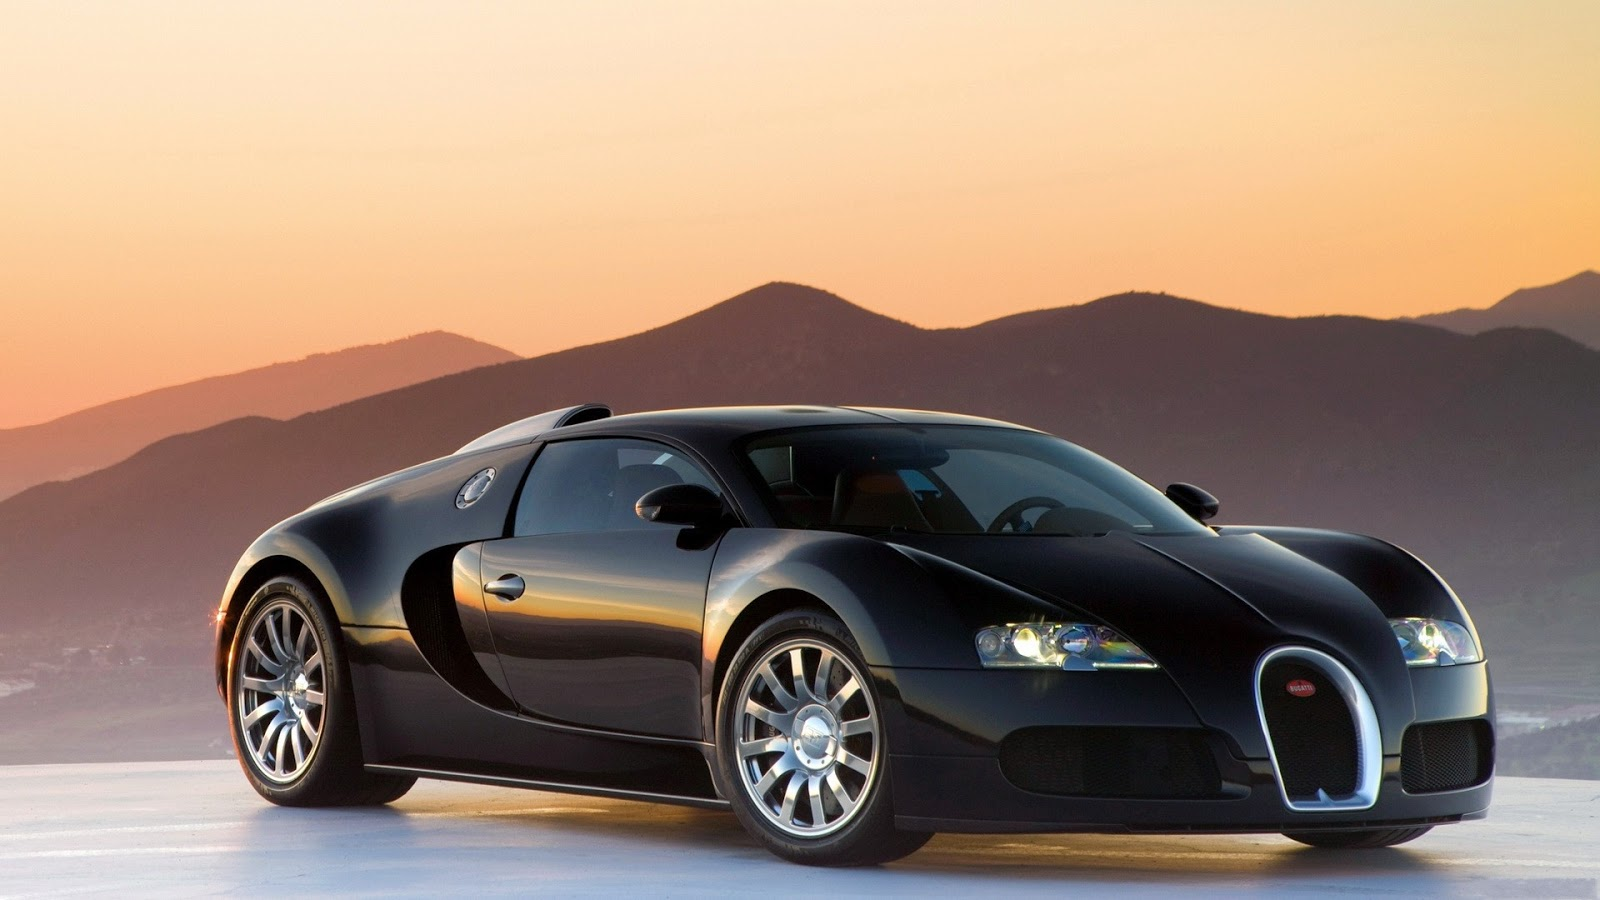 Wallpapers bugatti veyron full hd fondos de pantallas wallpaper - Bugatti veyron photos wallpapers ...